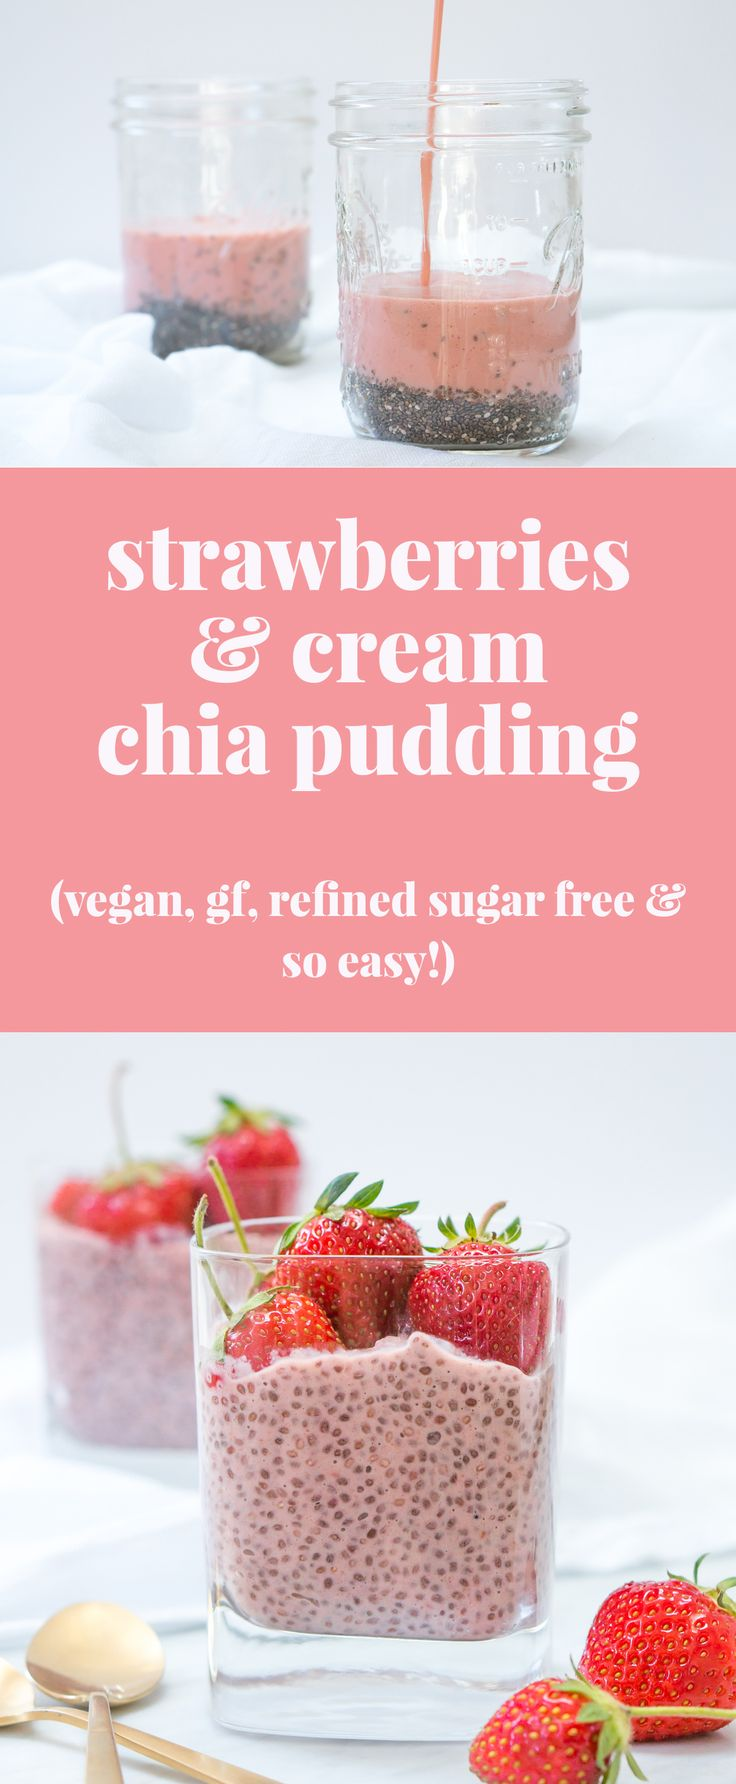 Strawberries and Cream Chia Pudding (Gluten Free, Vegan, Refined Sugar Free) | Sprouted Routes